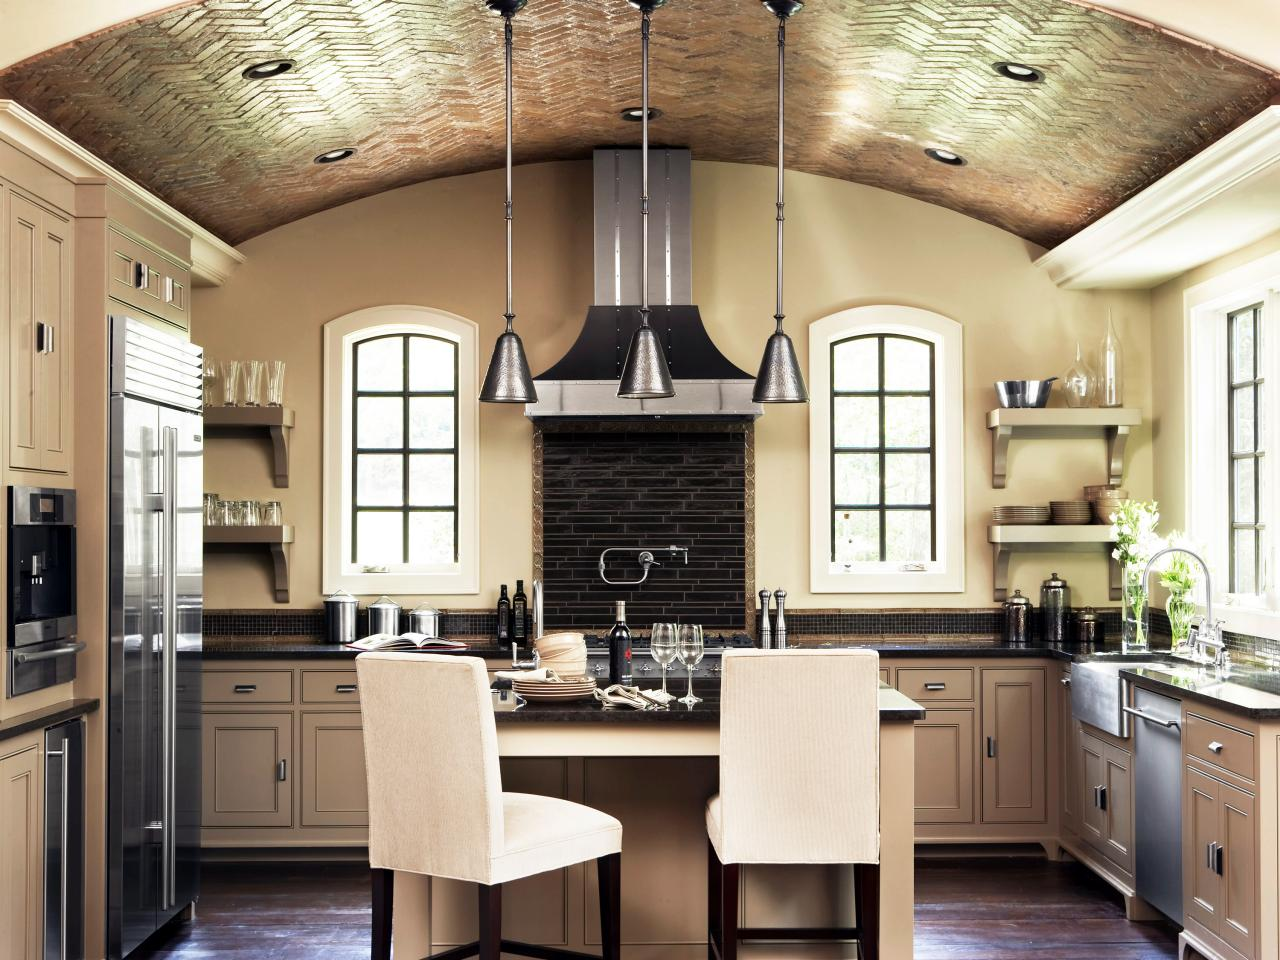 Old world kitchen designs photo gallery - Timeless Details